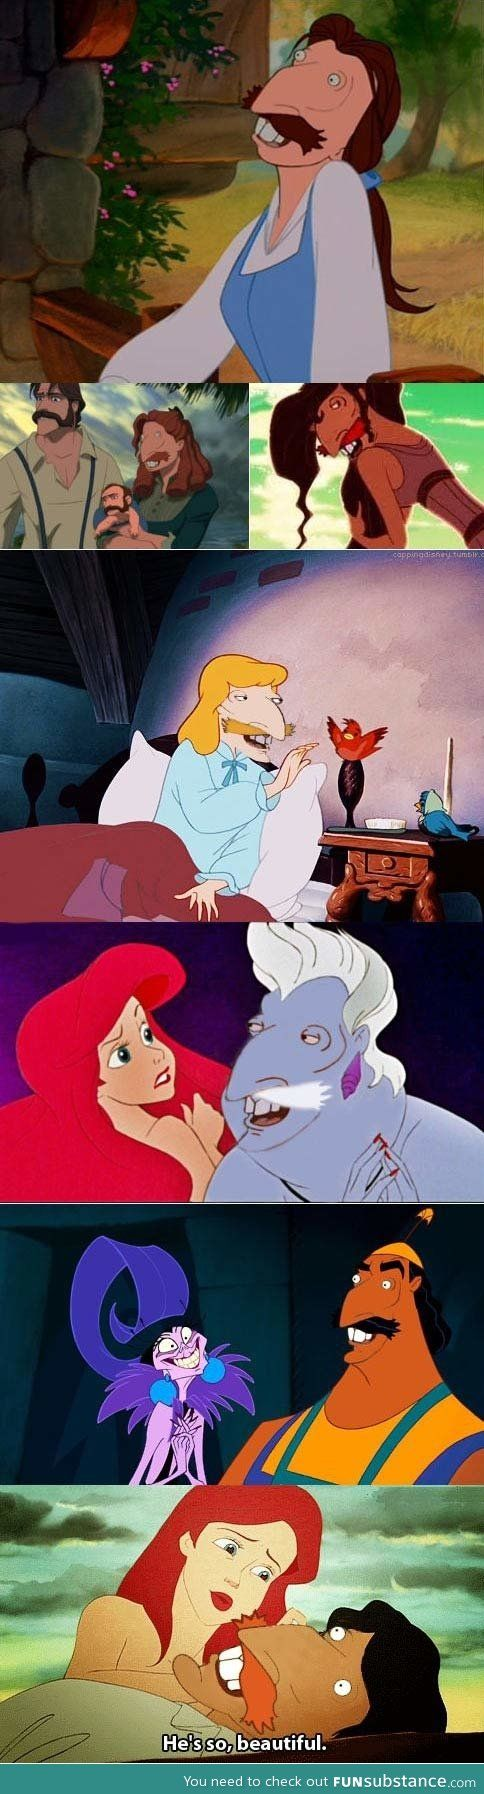 Nigel Thornberry's face on Disney princesses is most likely the most beautifully horrific thing I've seen on the internet.